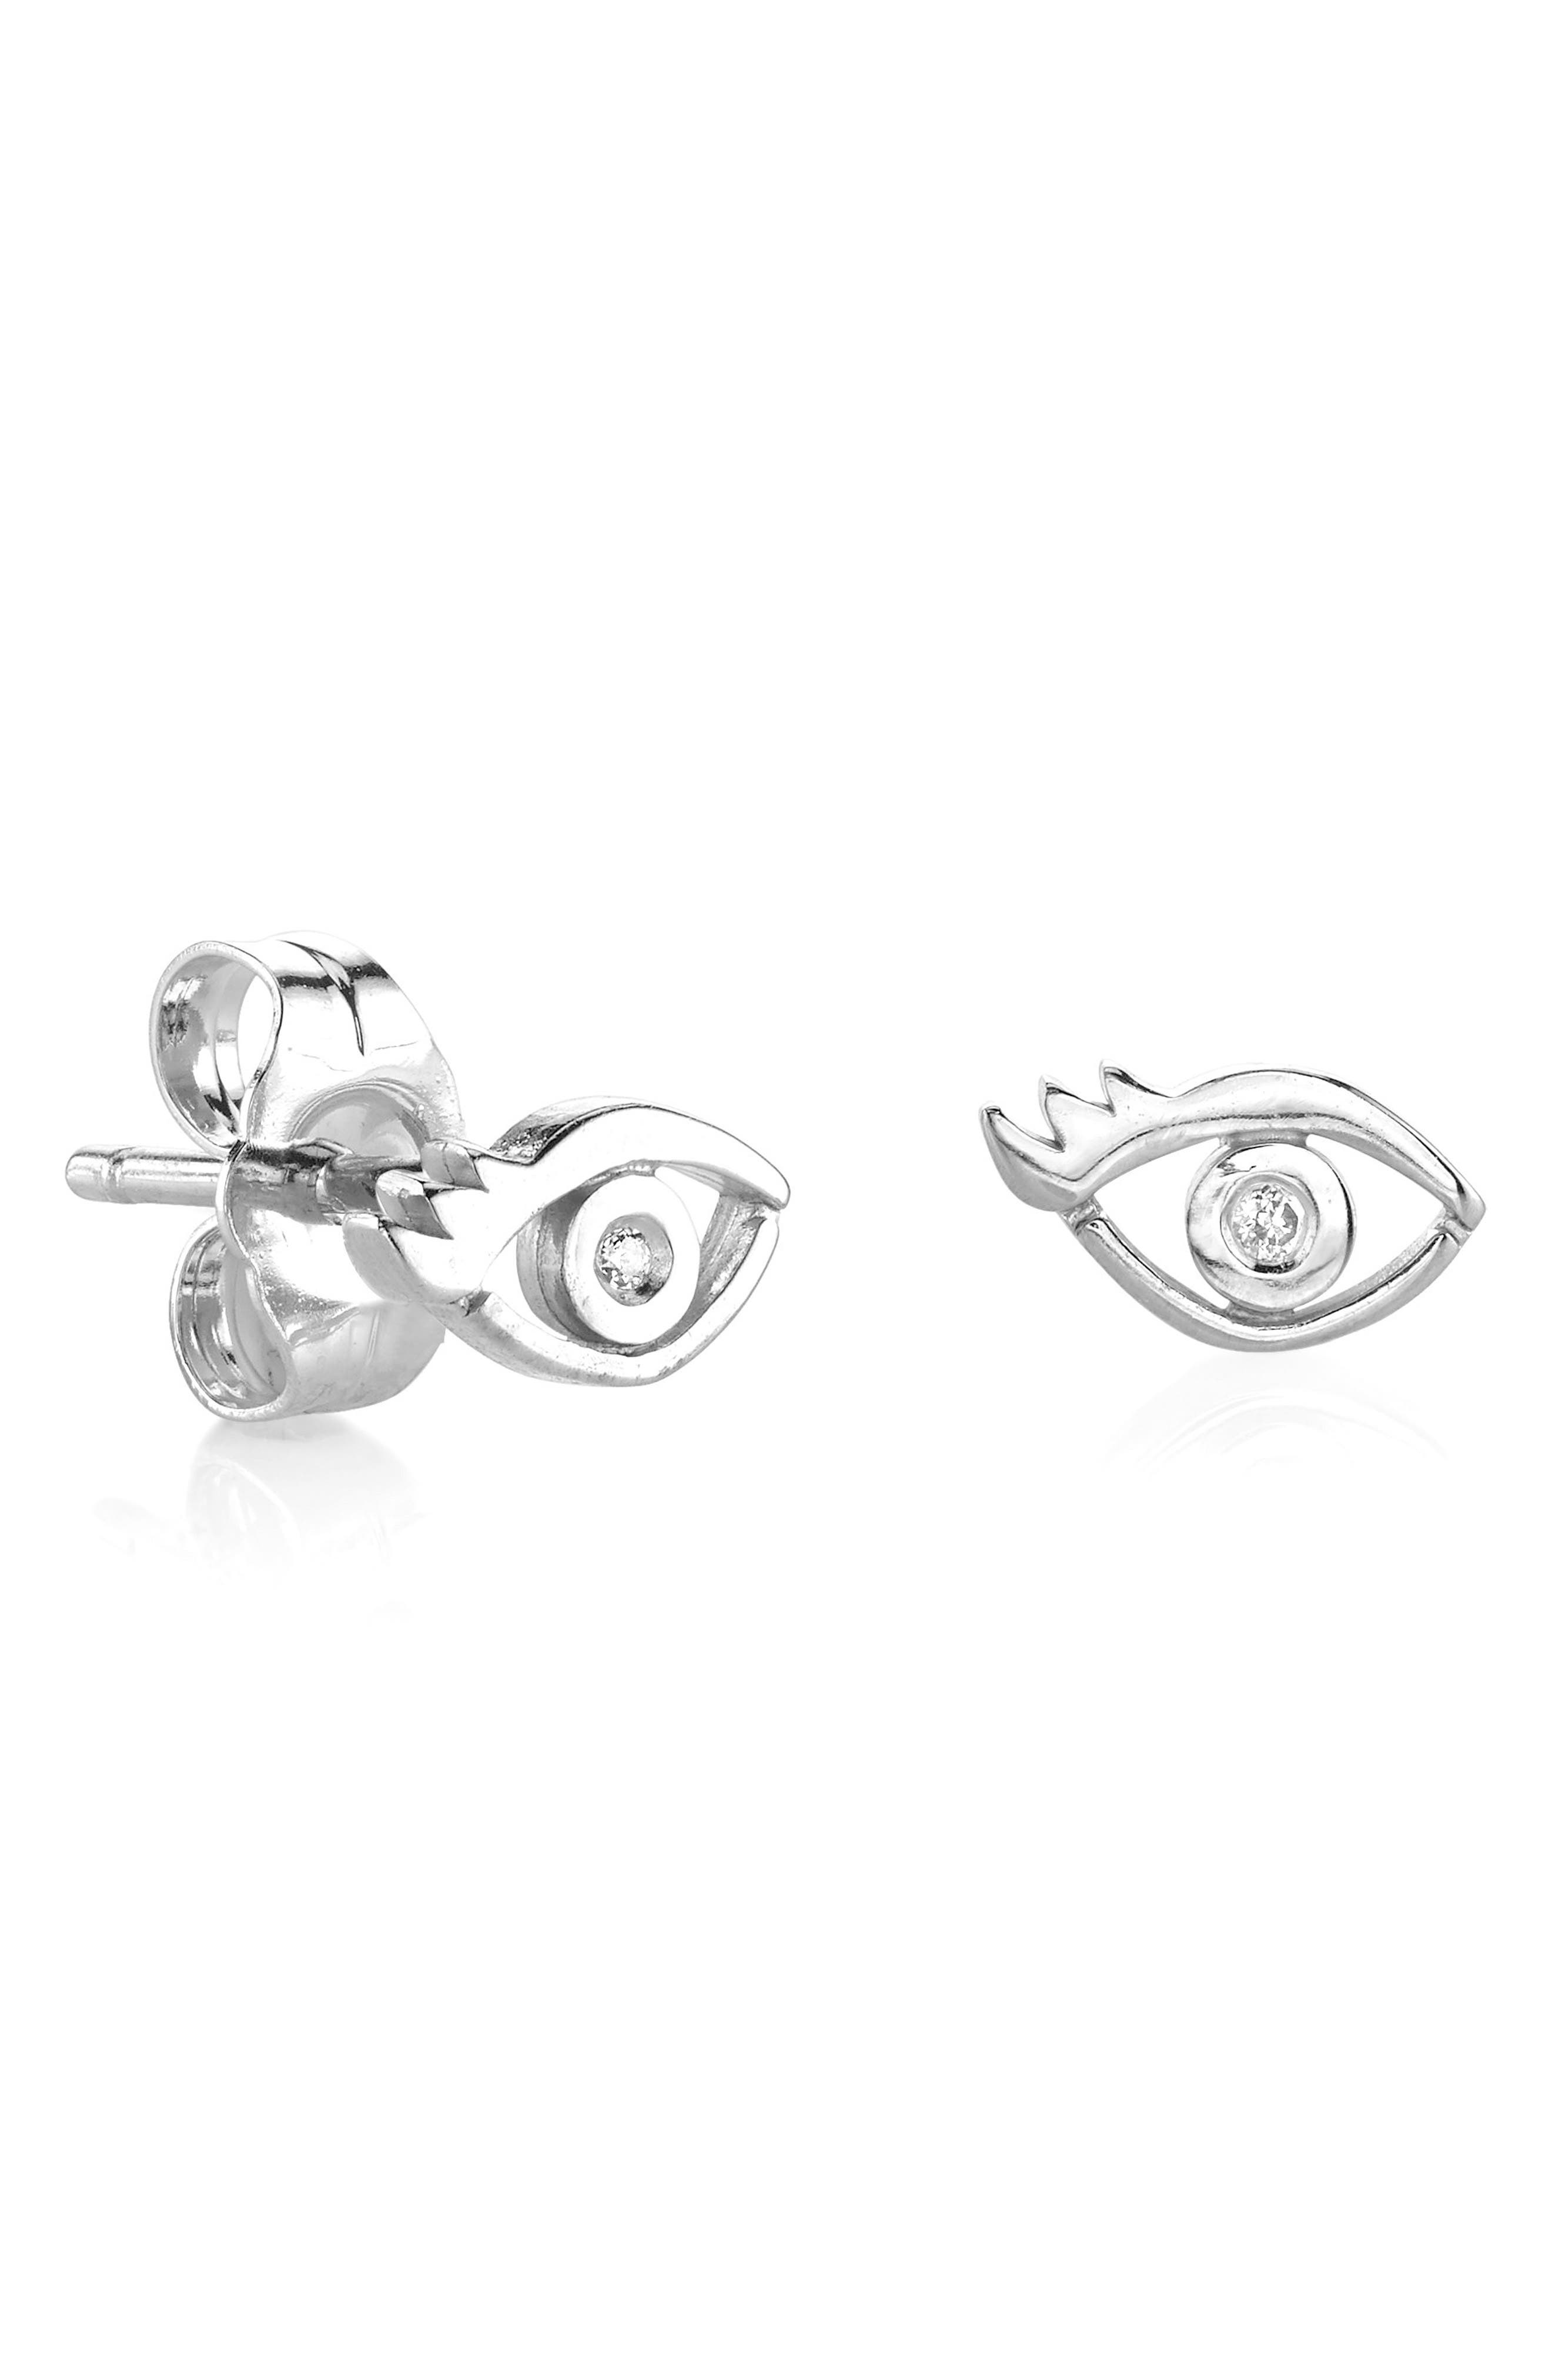 Evil Eye Diamond Stud Earrings,                         Main,                         color, Silver